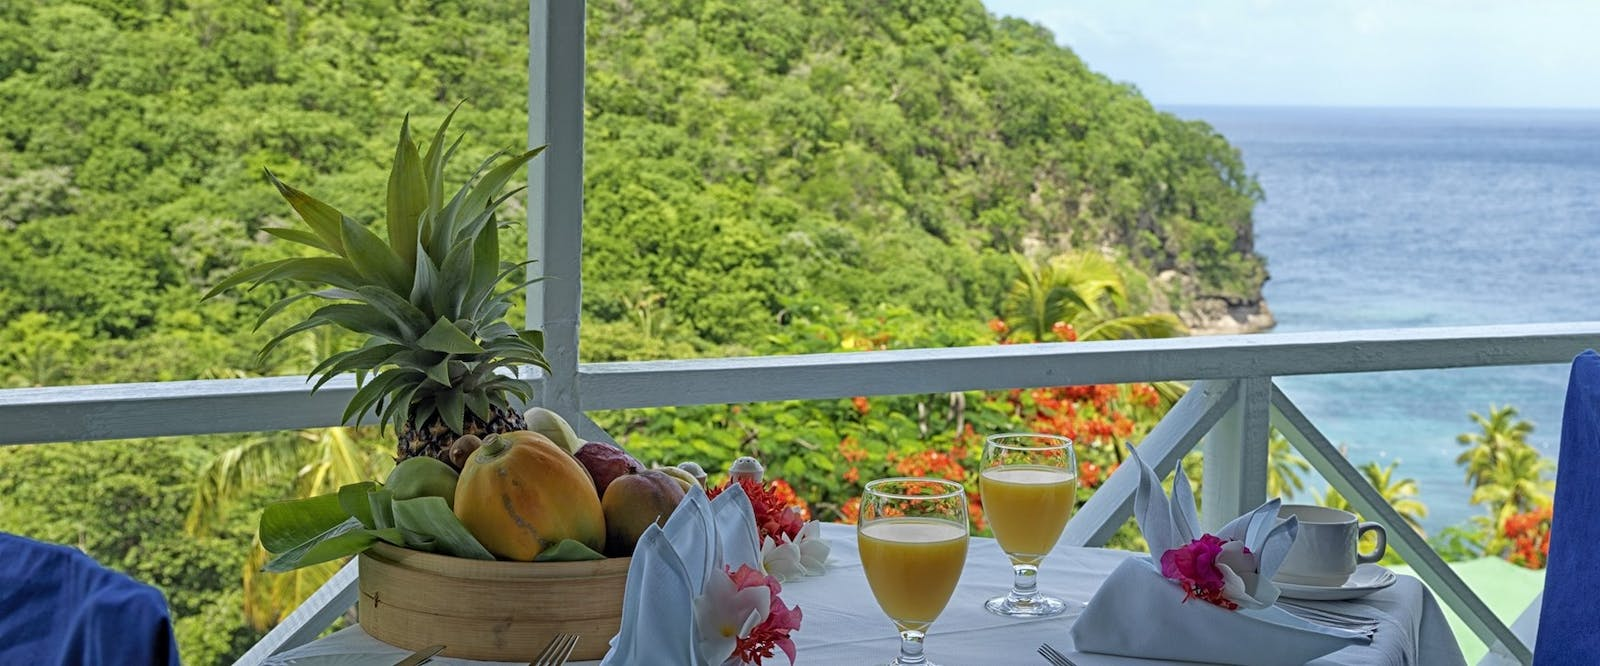 Beautiful Breakfast Setting at Anse Chastanet, St Lucia